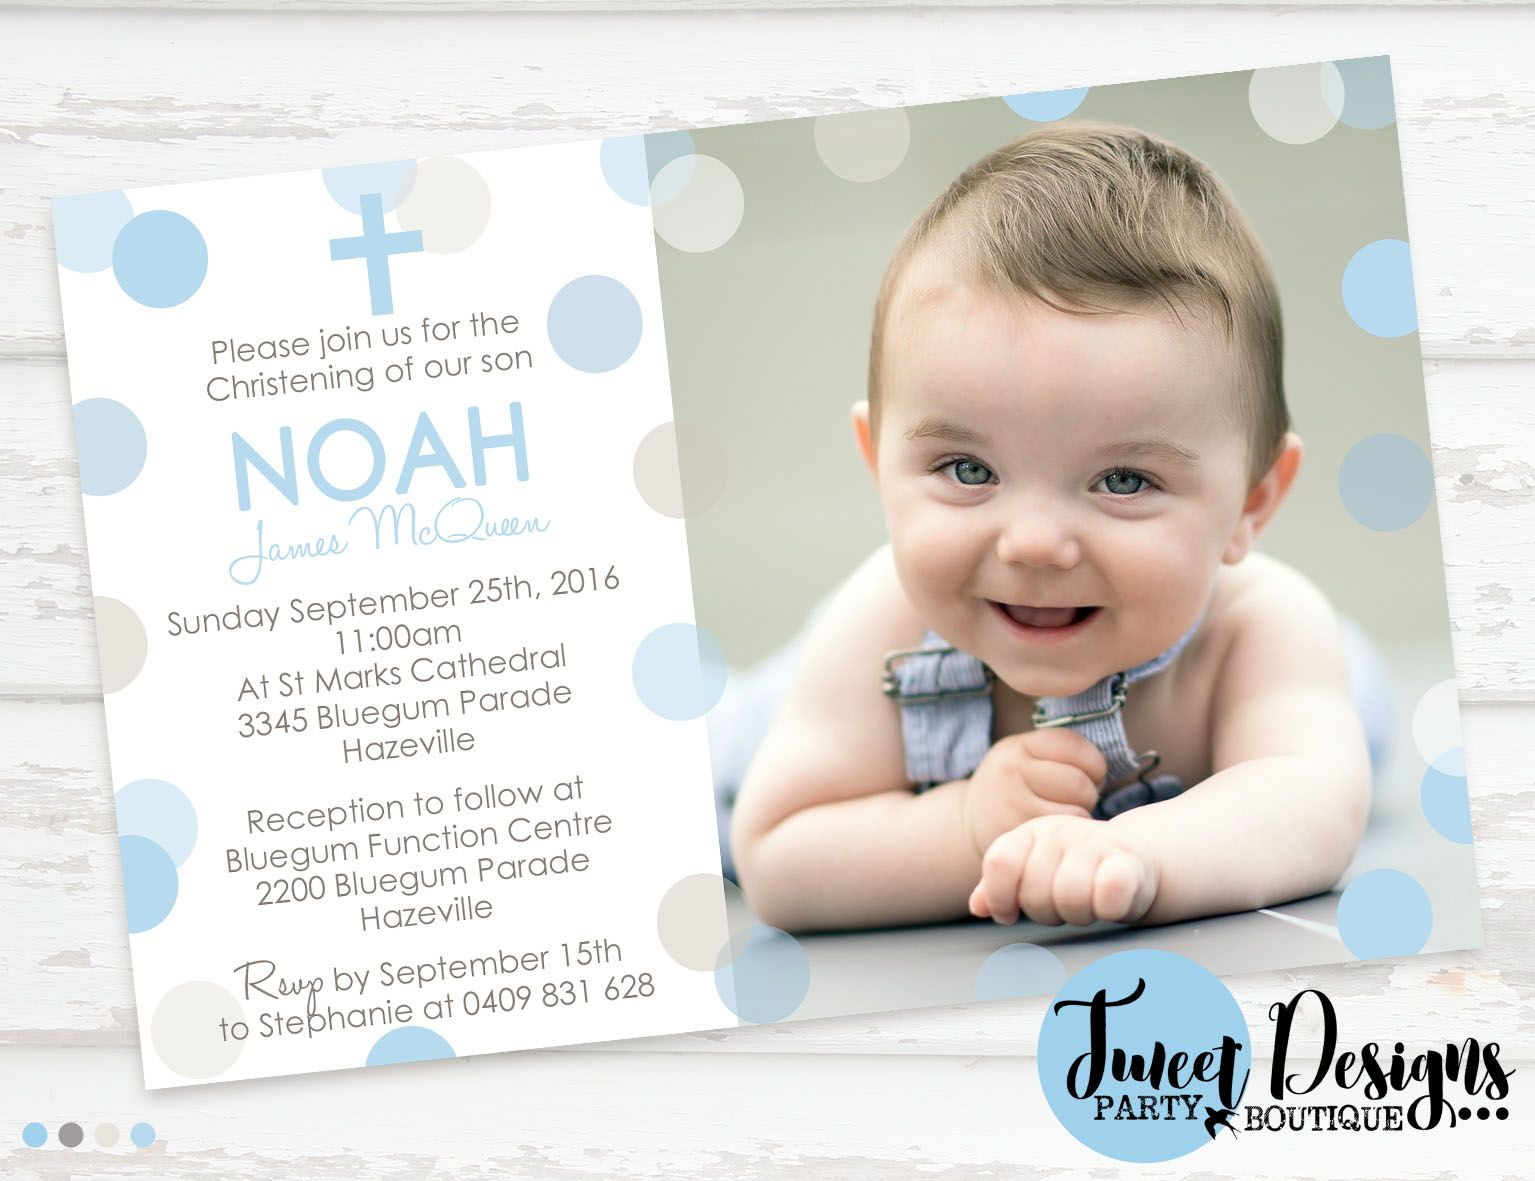 Print yourself baptism invitation invitations party print yourself baptism invitation invitations party solutioingenieria Image collections